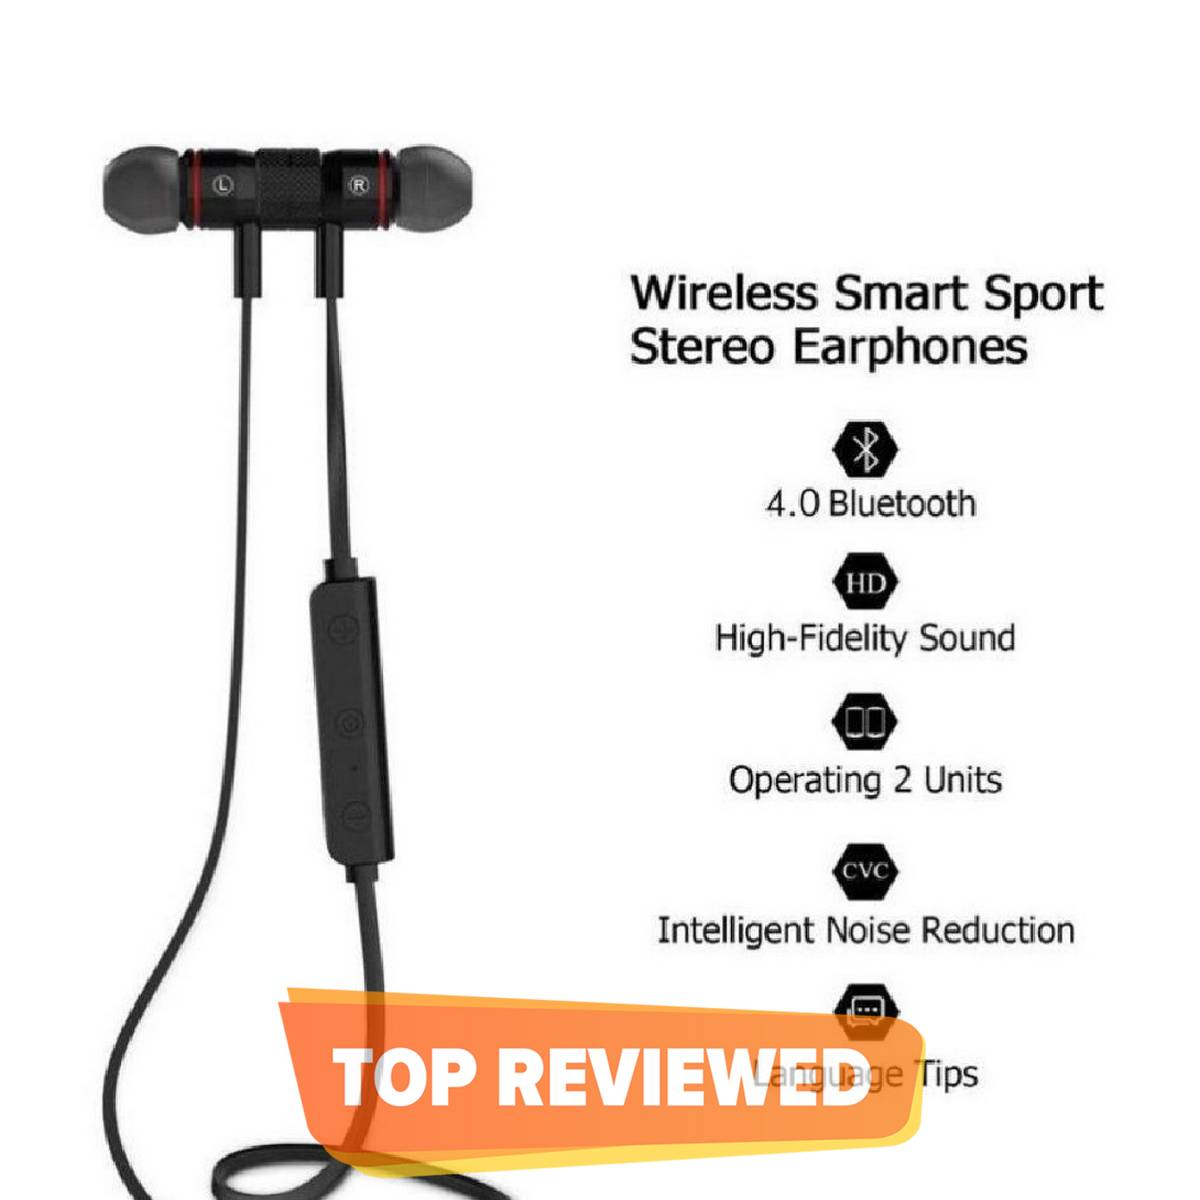 Genuine Bluetooth Handfree with mic and charging slot  Wireless Handfree  Wireless hand free Bluetooth   Wireless Bluetooth Earphones  Wireless Bluetooth headset compatible with android devices  Bluetooth earphone for pubg  Wireless Hands fr